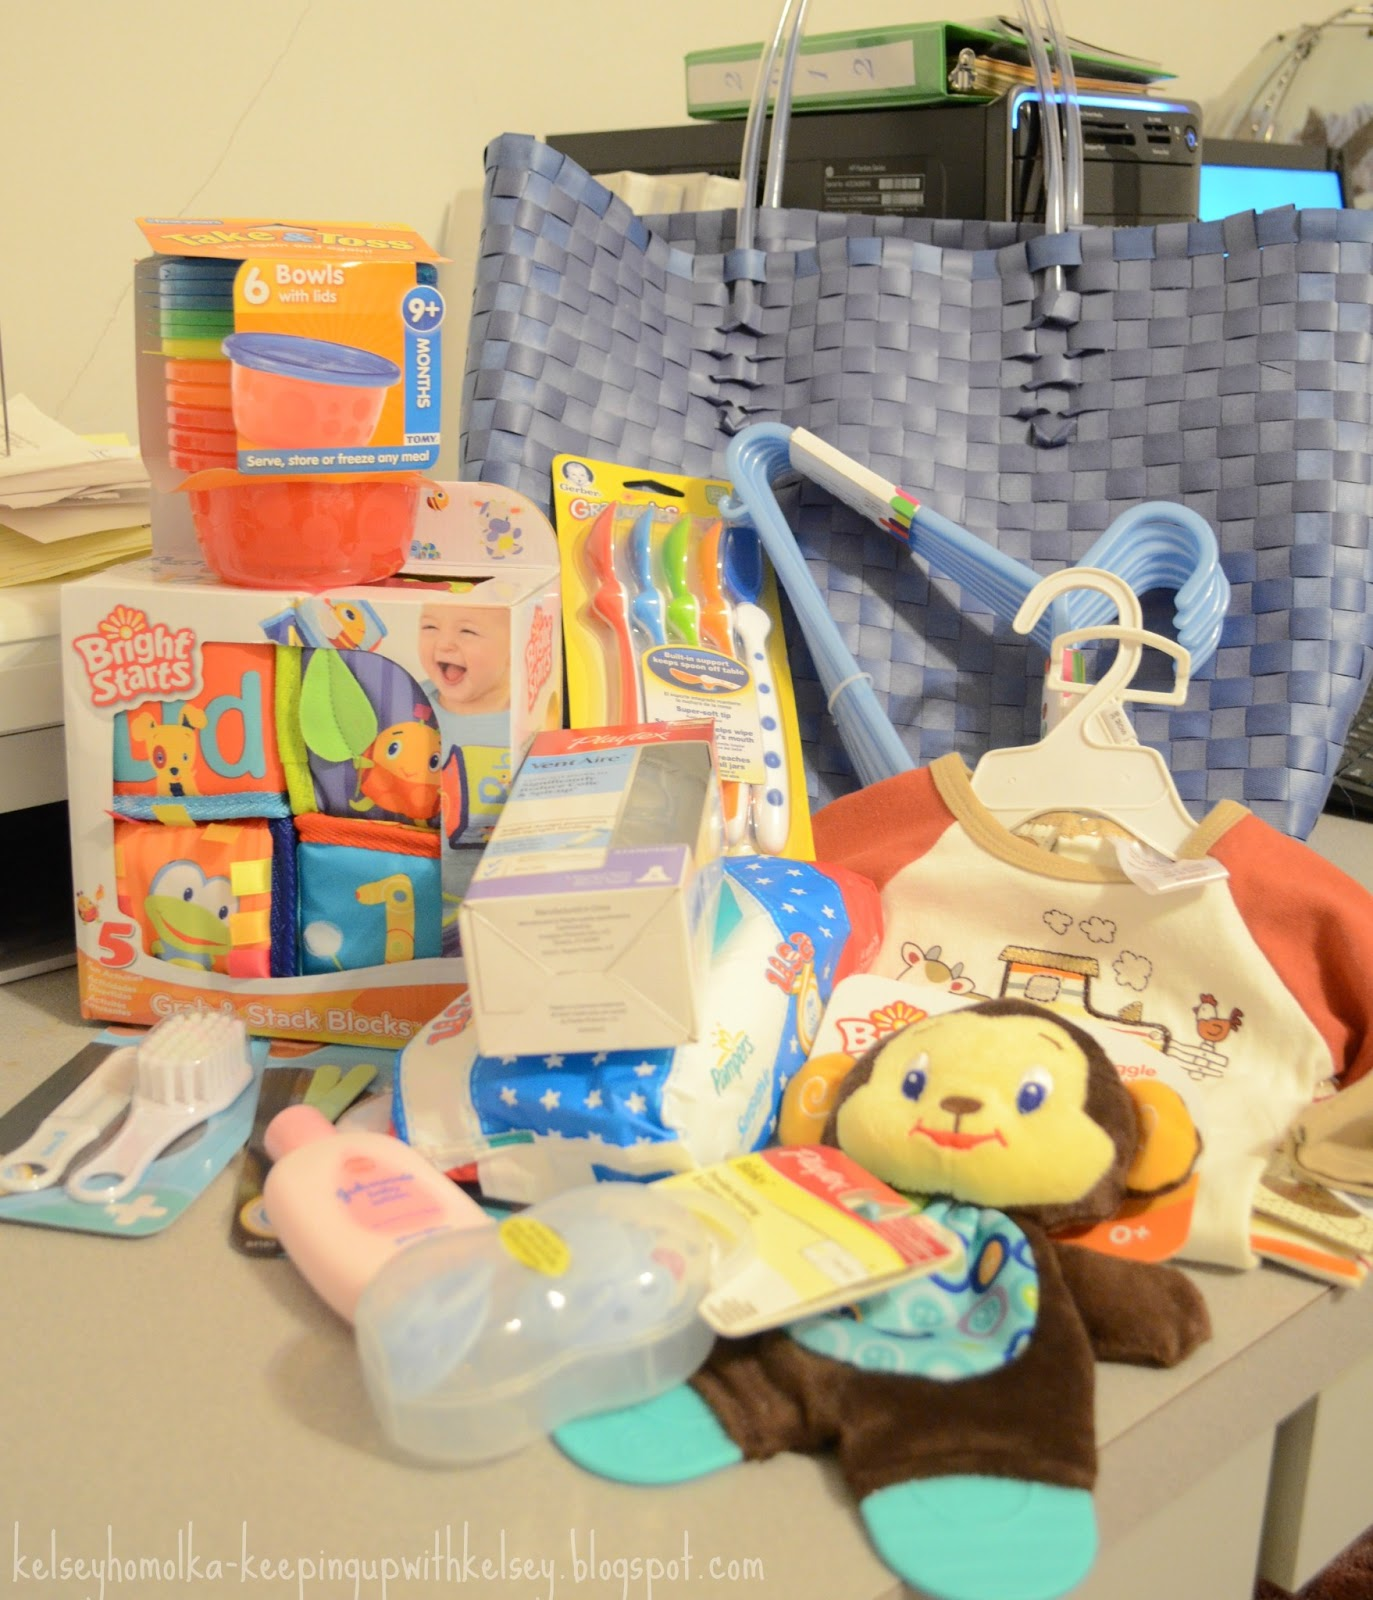 Keeping Up With Kelsey: Baby Shower Gift